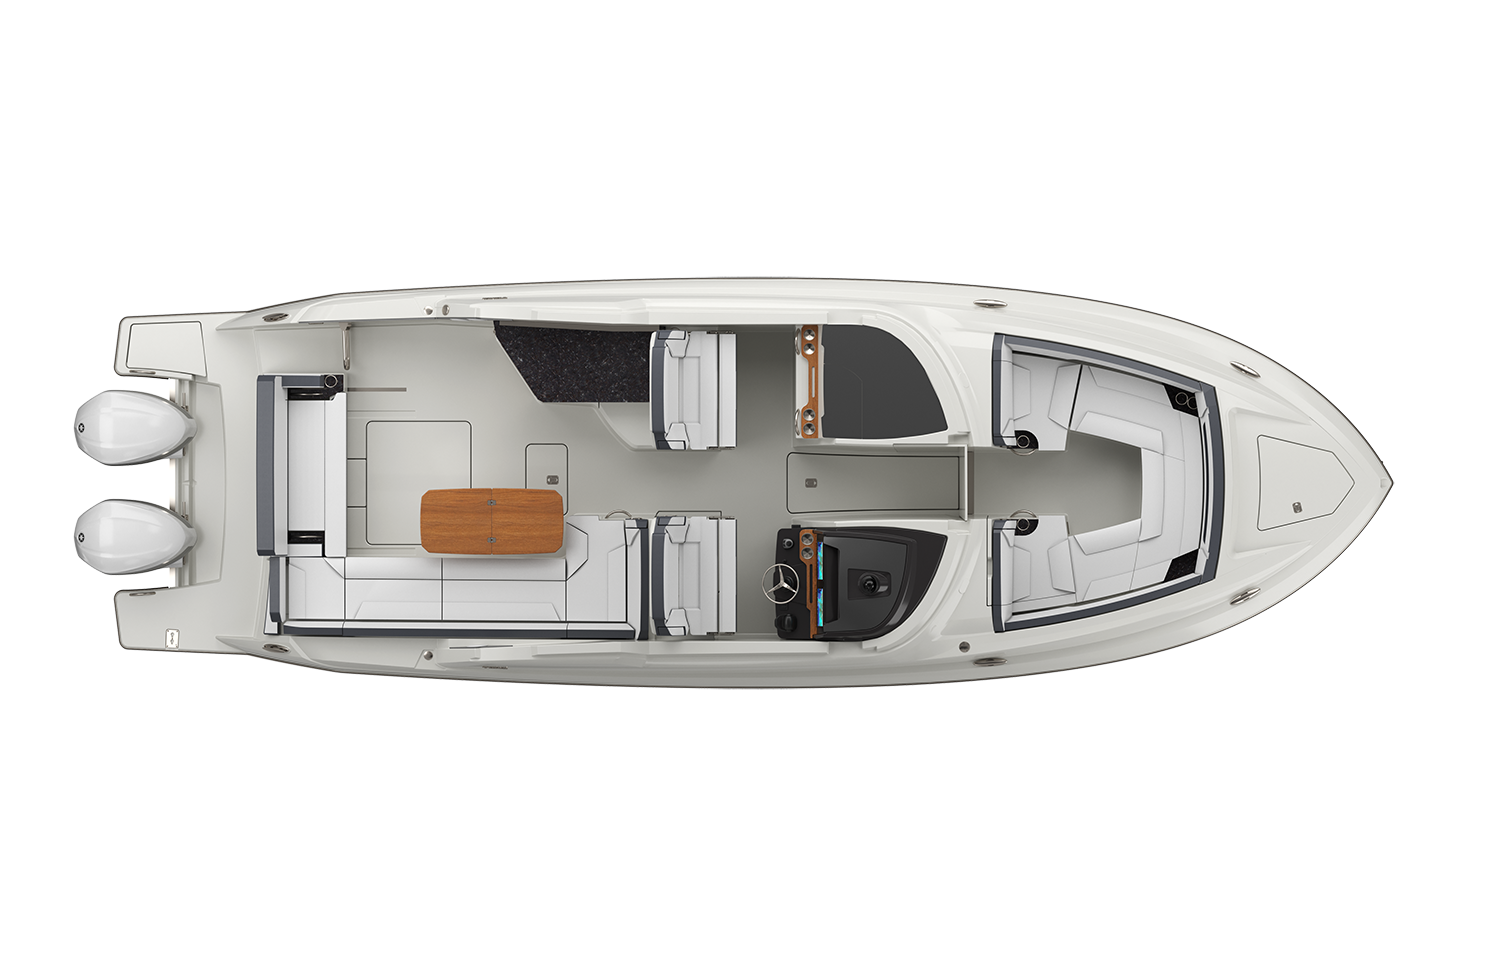 34 LX Exterior Plan View Without Hardtop